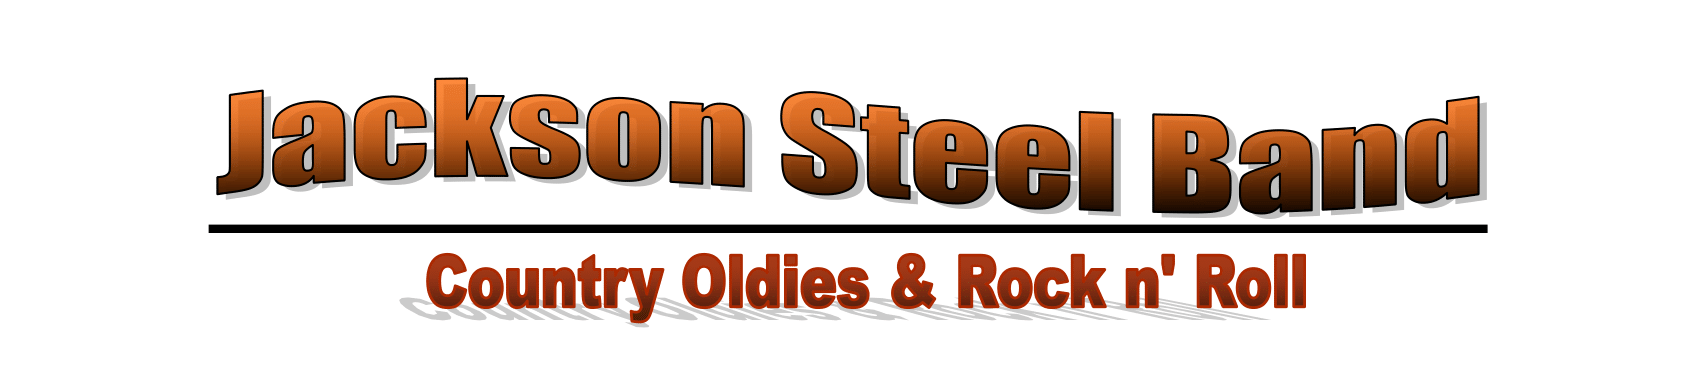 https://www.reverbnation.com/jacksonsteelband